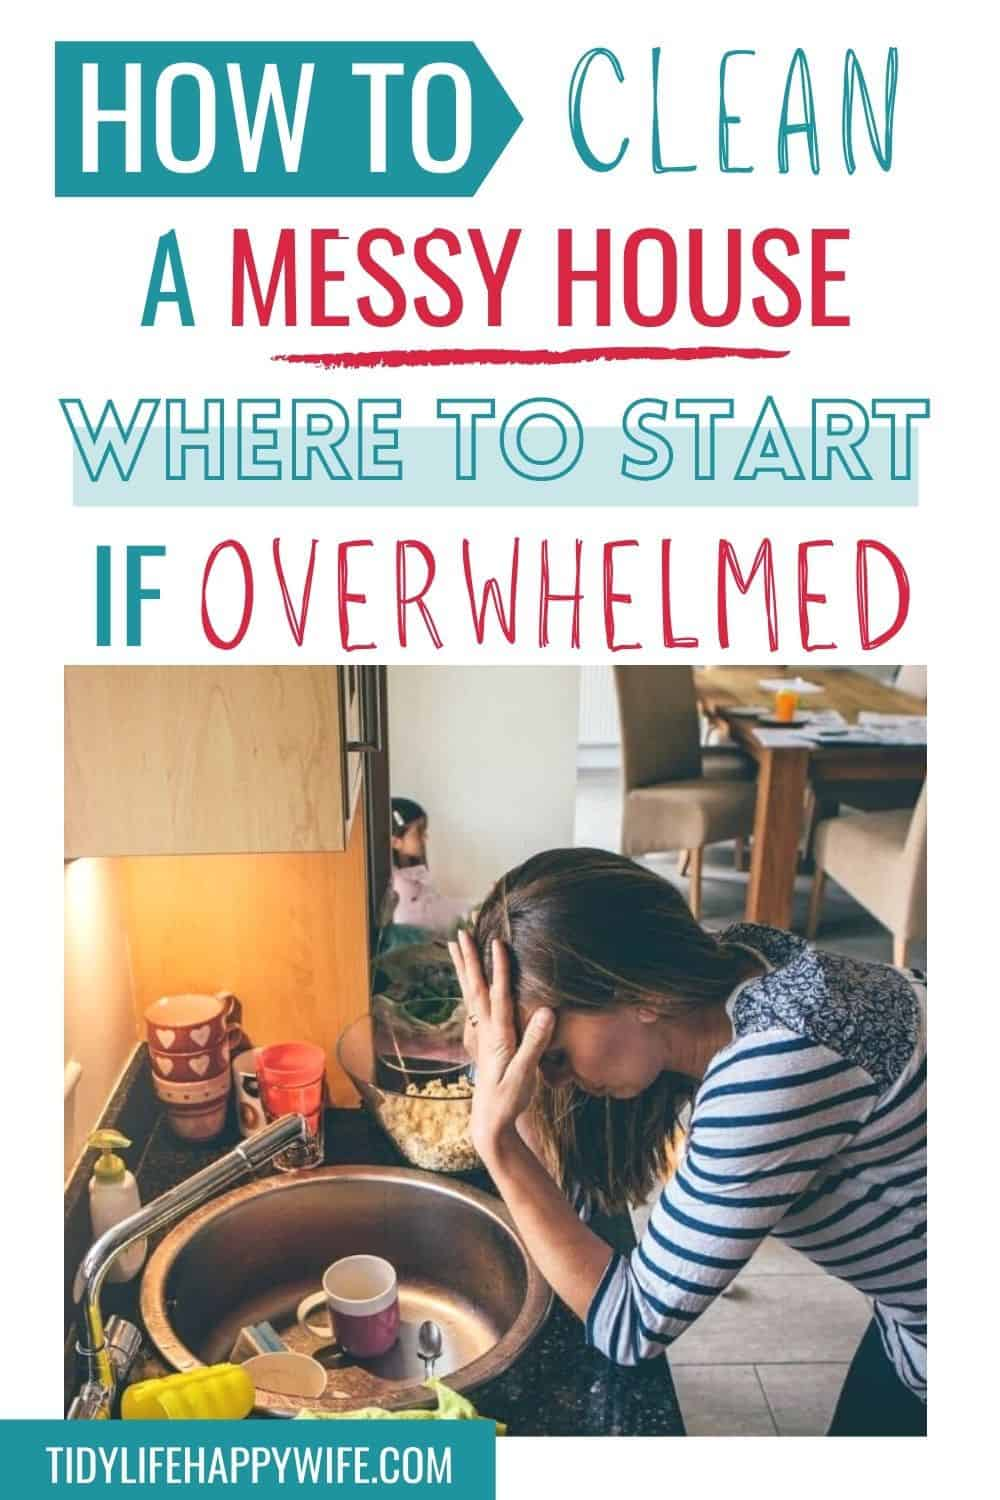 Frustrated and overwhelmed by a messy house? Too paralyzed to figure out how or where to start cleaning the mess? Here's a step-by-step guide that shows you exactly where to start, what to clean next, and how to keep your messy house clean on a daily basis. Cleaning tips to clear the clutter and prevent the mess before it gets to be too much to handle. How to clean your messy home even when your completely overwhelmed and paralyzed by the mess.  via @Tidylifehappywife